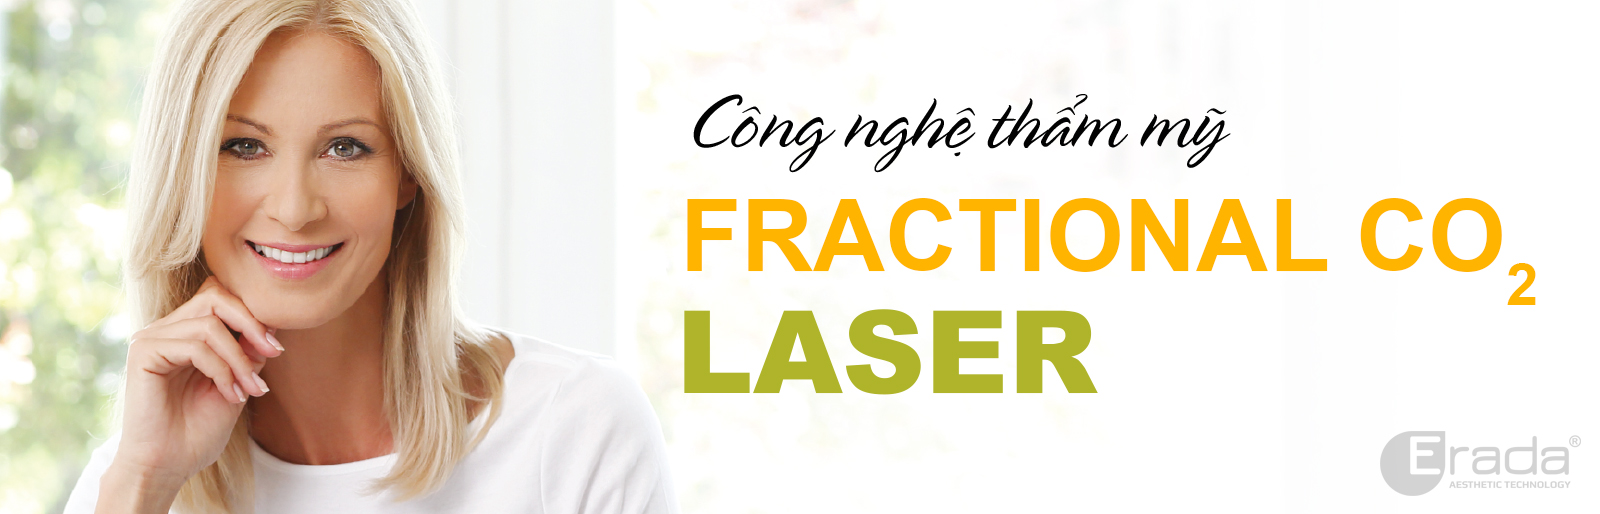 fractional-CO2-laser-cong-nghe-laser-moi-nhat-danh-cho-spa-tham-my-vien-1